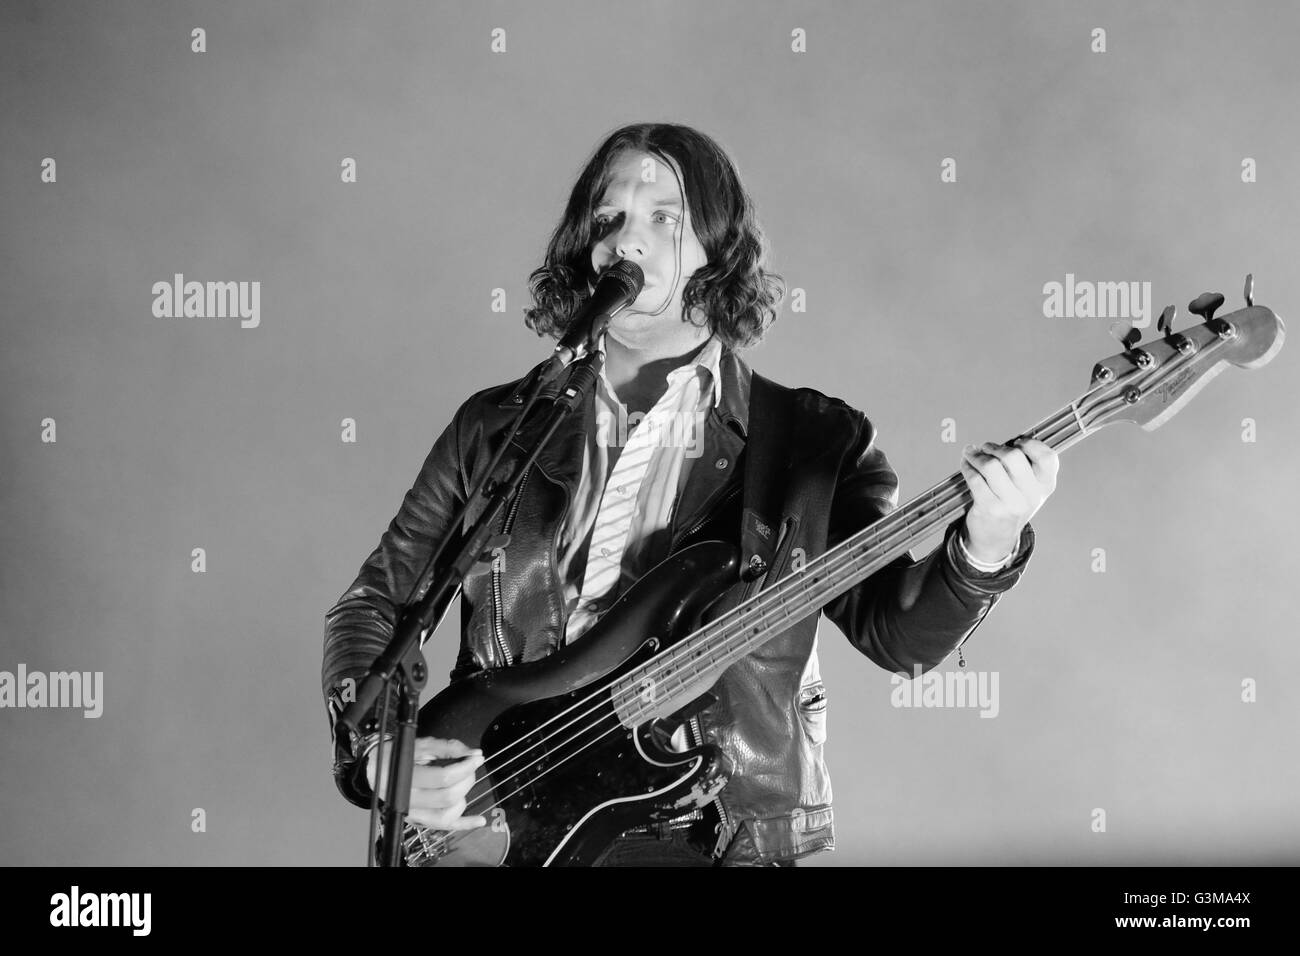 Jamie Cook of English rock band Arctic Monkeys performs at Zurich Openair Festival 2013. - Stock Image